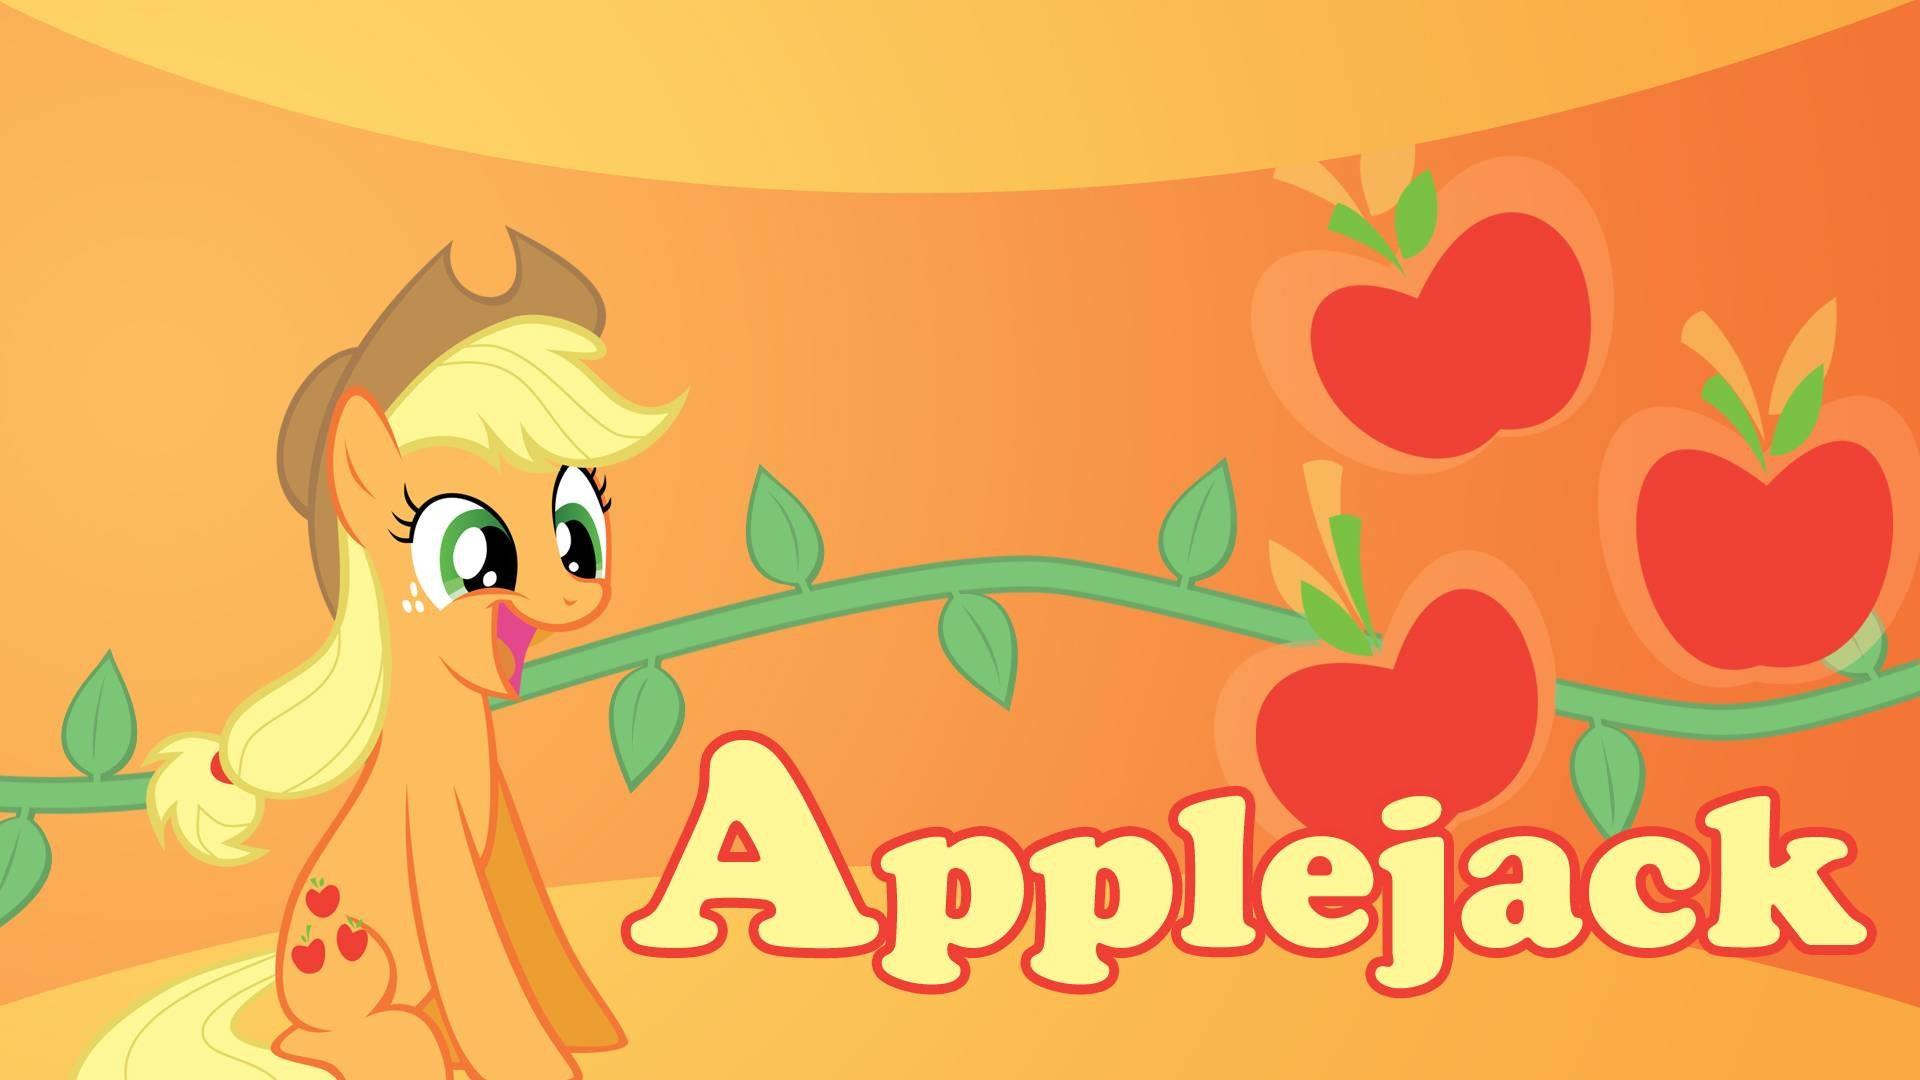 1920x1080 my little pony friendship is magic applejack | Applejack Wallpaper - My  Little Pony: Friendship